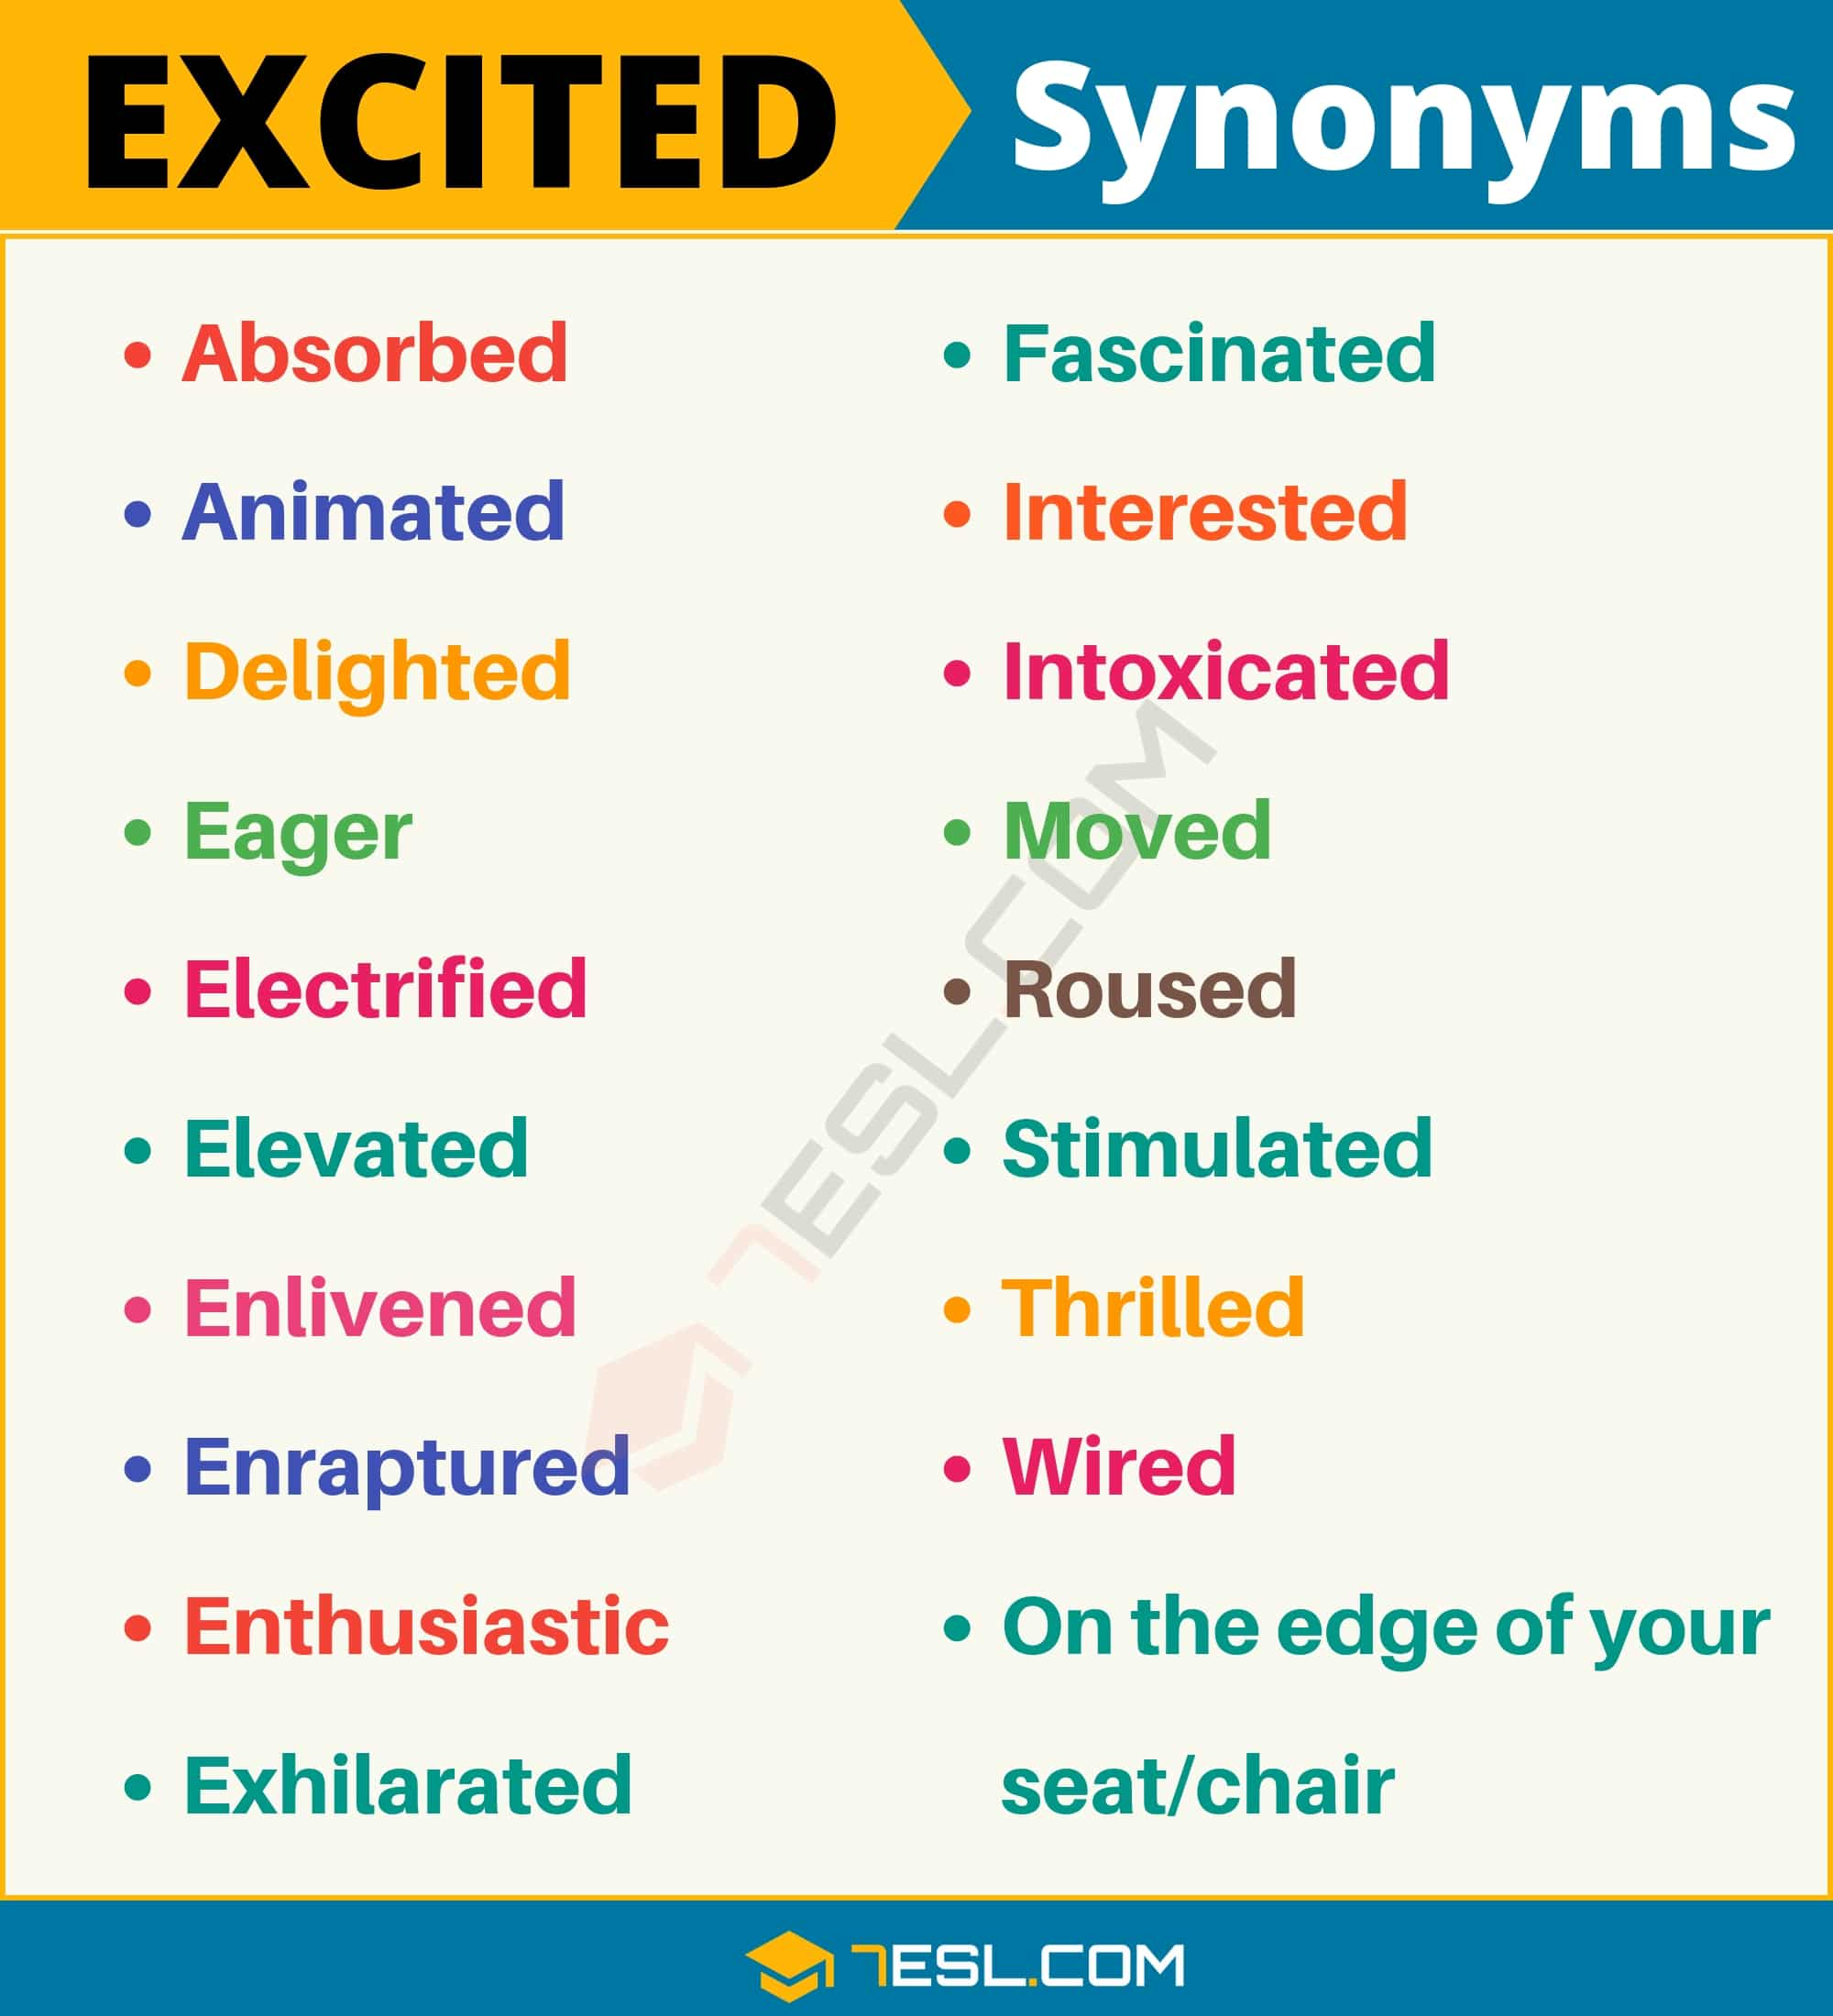 EXCITED Synonym: Useful List of 19 Synonyms for Excited in English